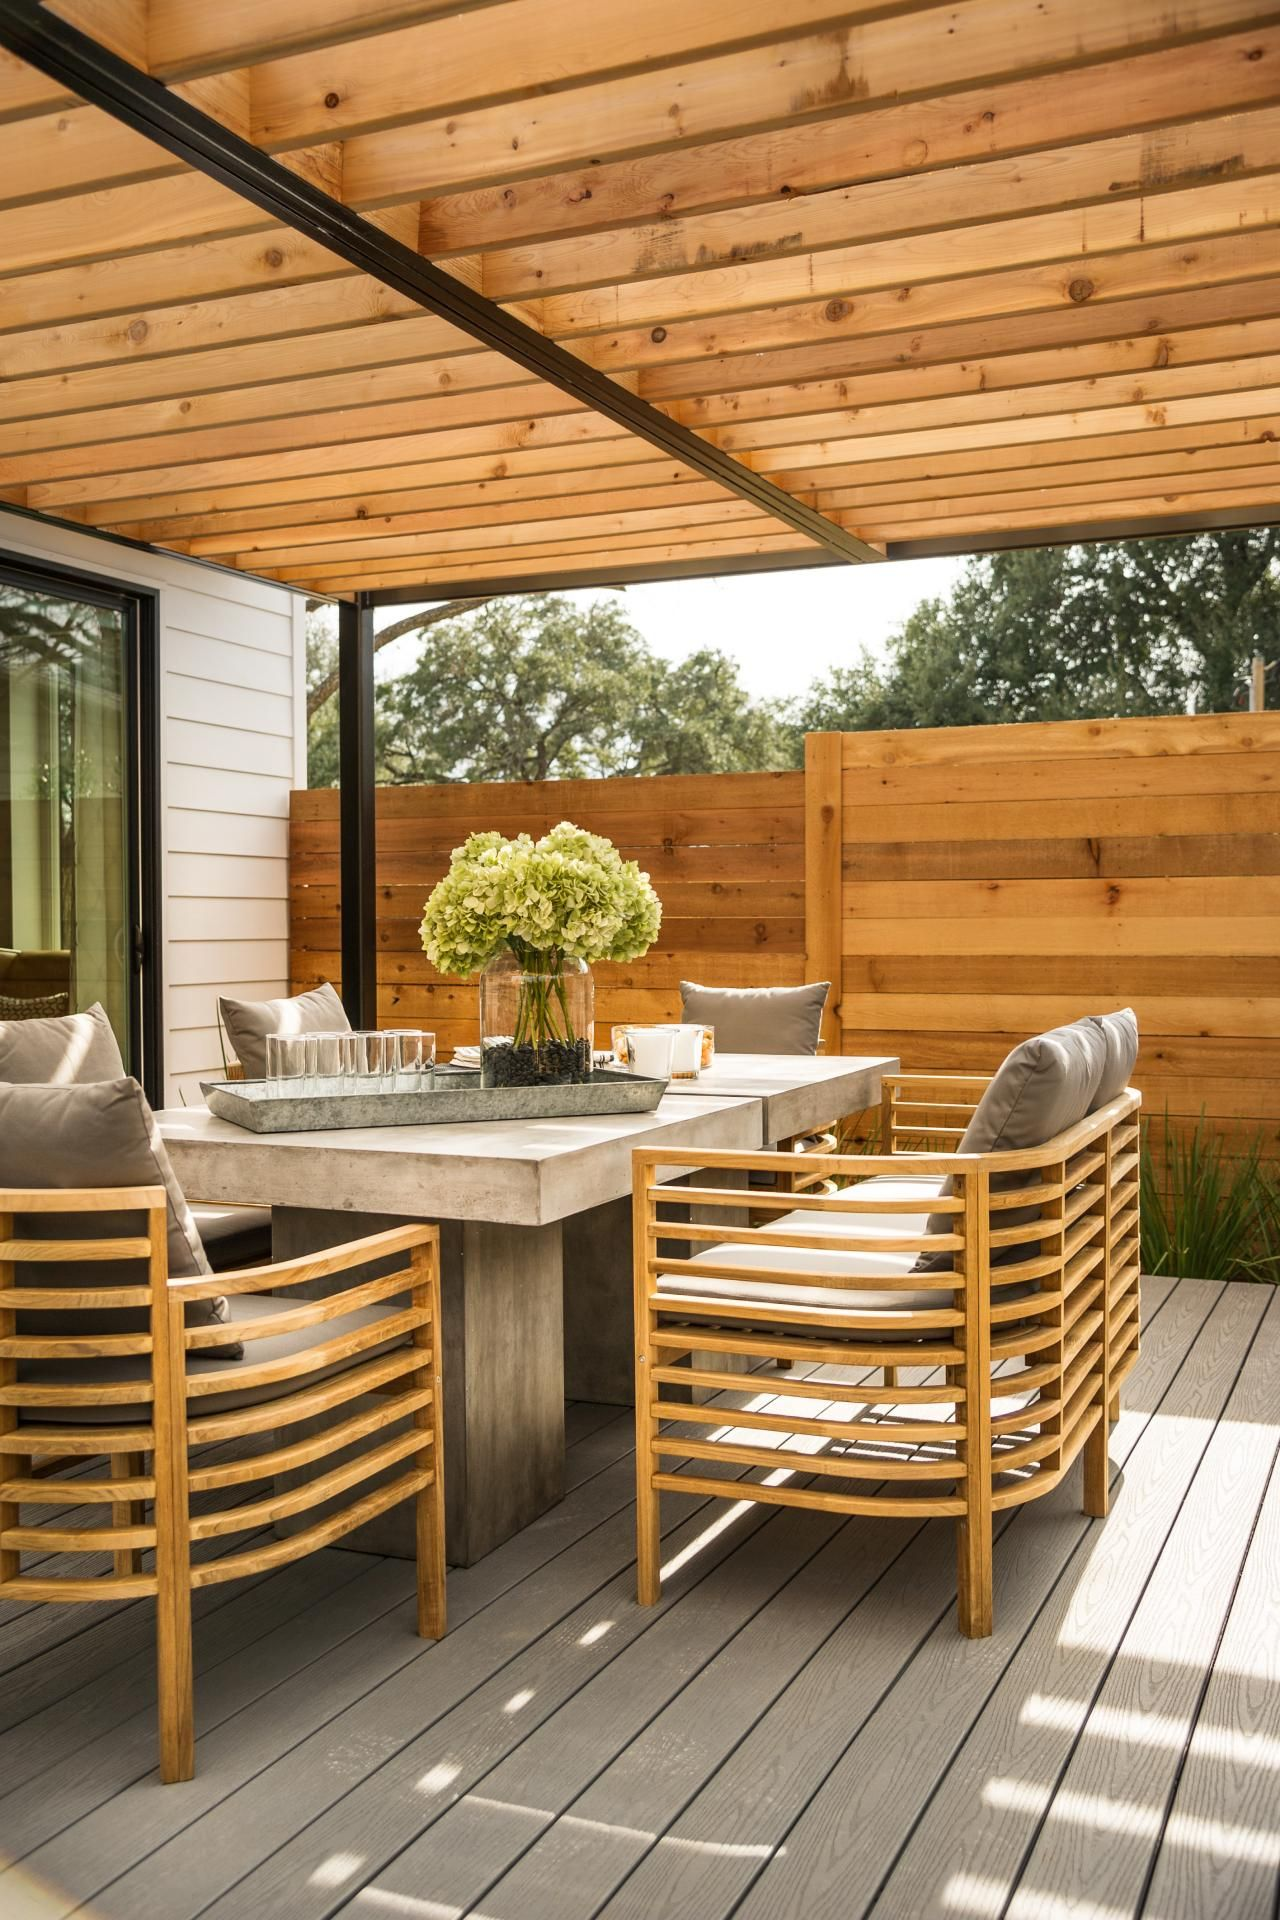 Pictures Of The Hgtv Smart Home 2015 Deck - Hgtv